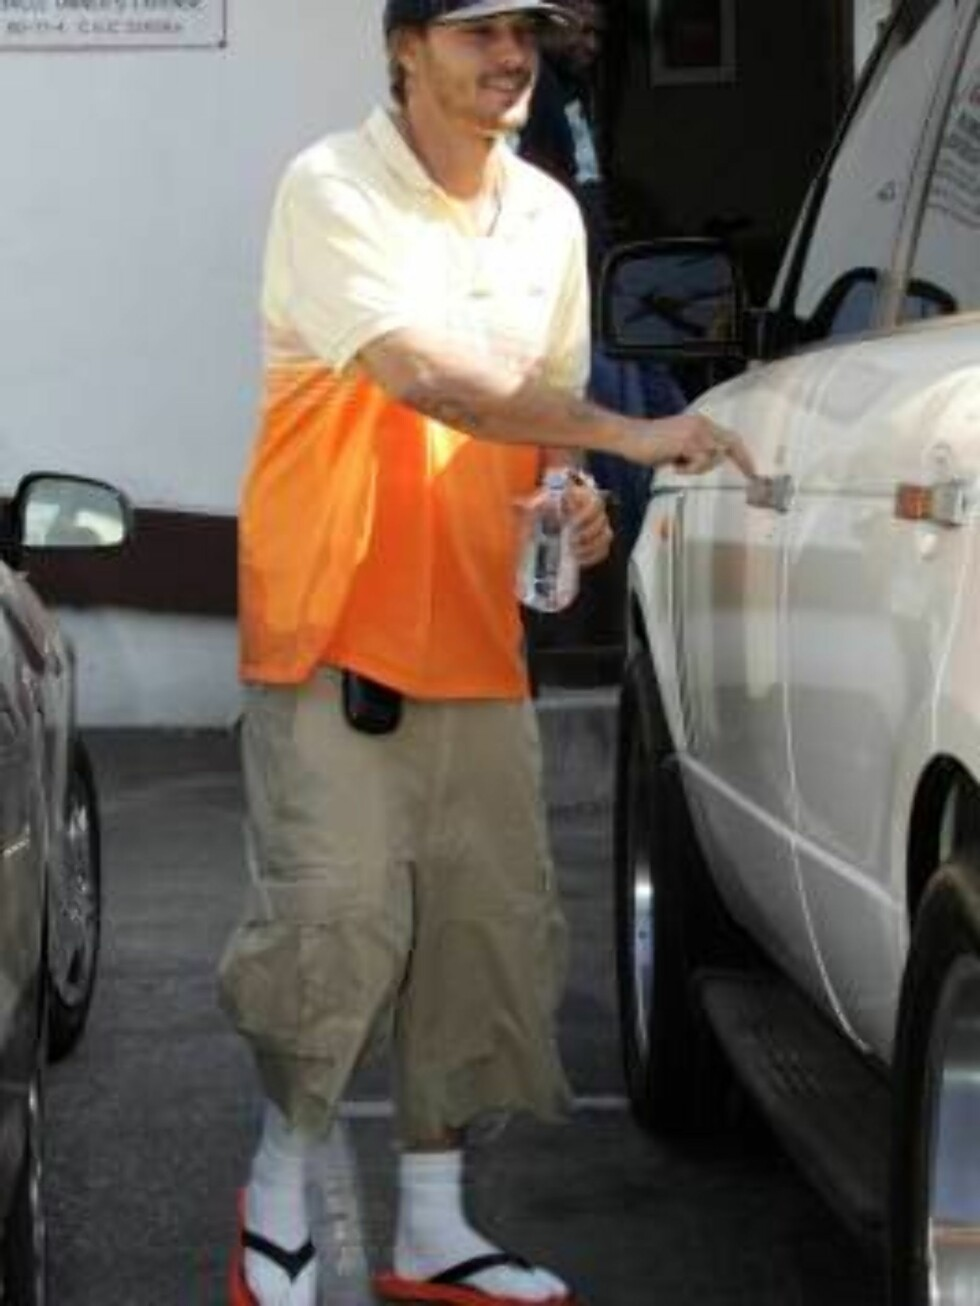 Code: X17XX8 - Madison-Spaly, Hollywood, USA, 06.07.2005: Kevin Federline, famous for his collection of retro Nike high-top sneakers, is sporting a new footwear fashion -- flip flops with socks!  The famous Mr. Spears visited his wife at a photoshoot, but Foto: All Over Press